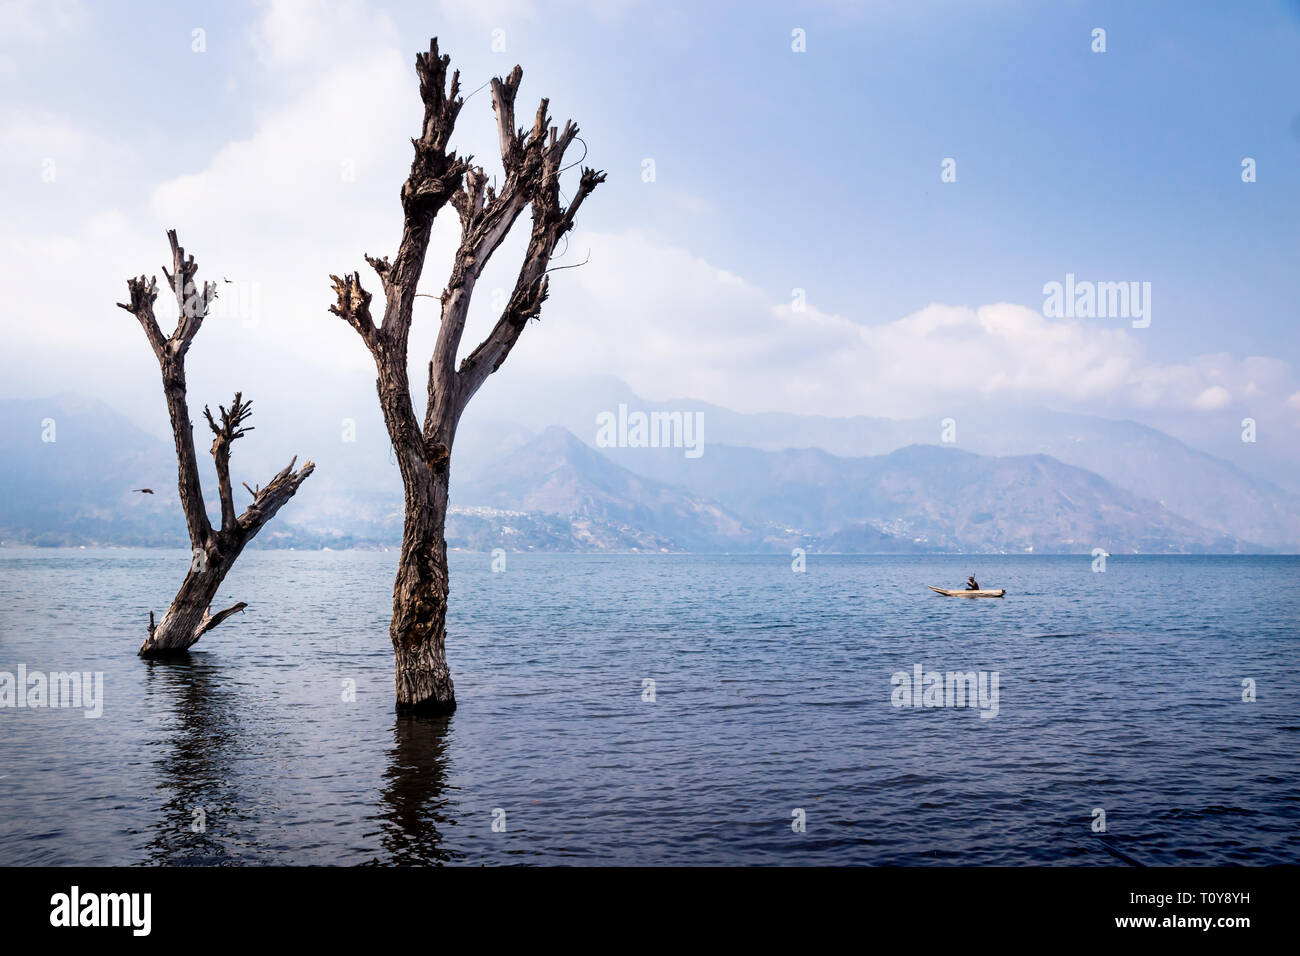 Dead tree with reflection in lake atitlan with boat and mountain range, San Pedro, Guatemala - Stock Image